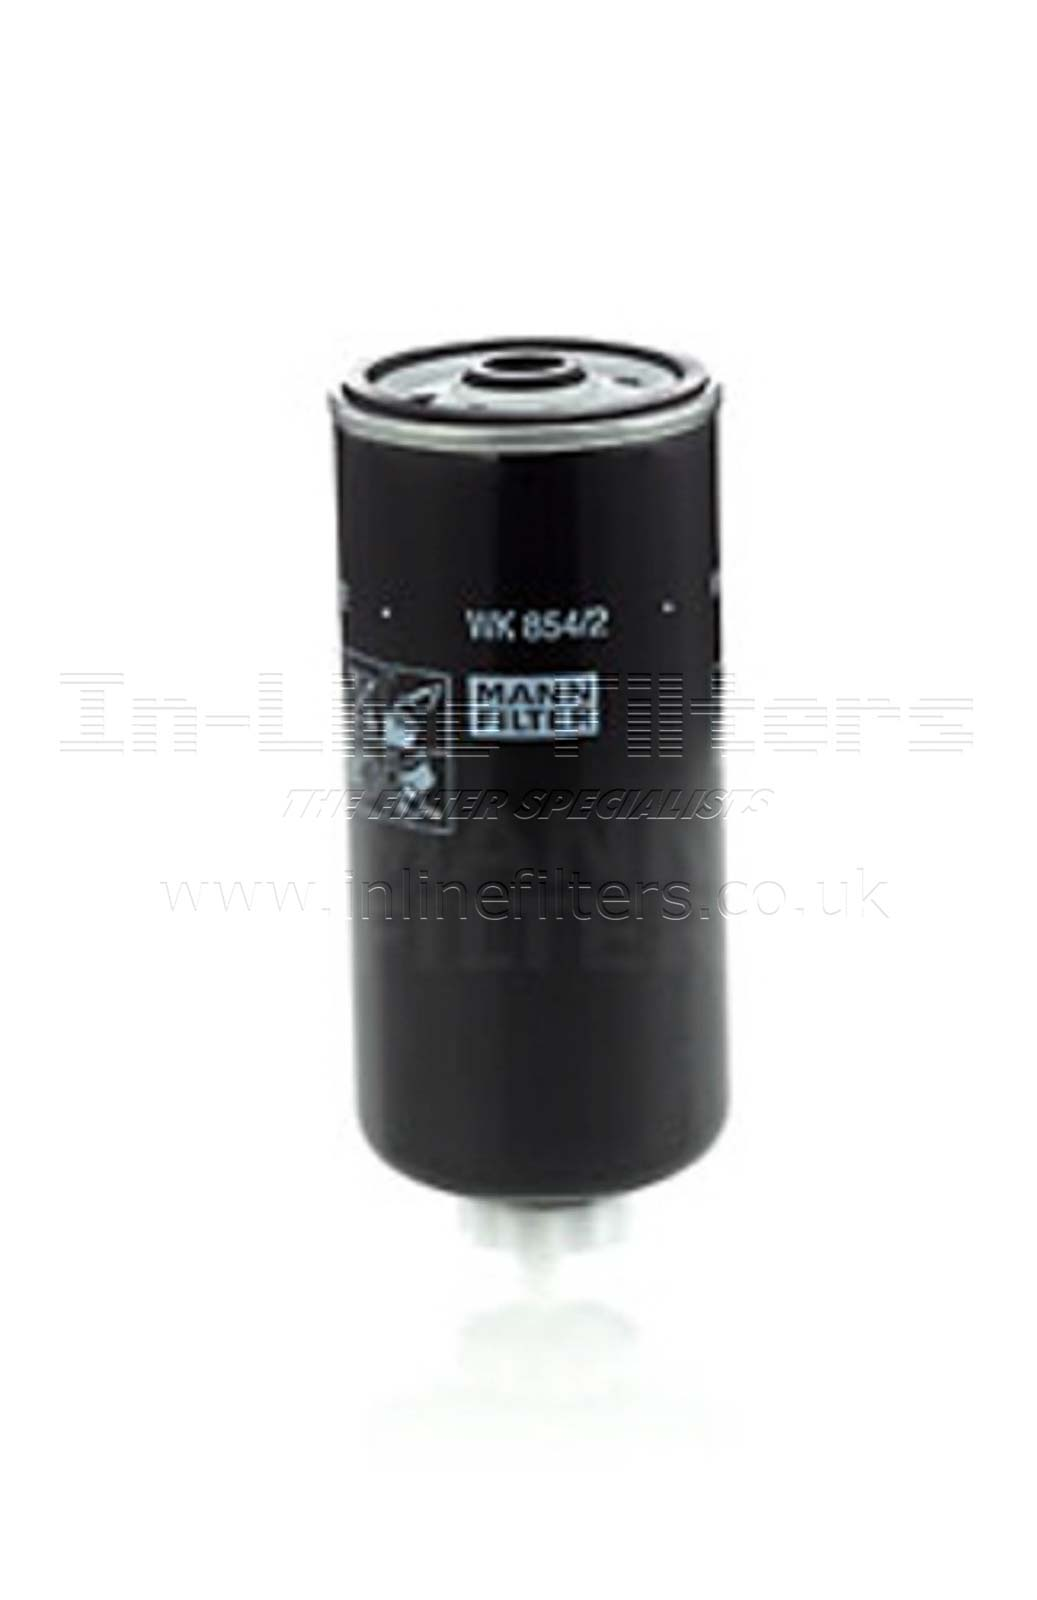 FMH-WK854-2 FILTER-Fuel(Mann WK854/2) - Click Image to Close